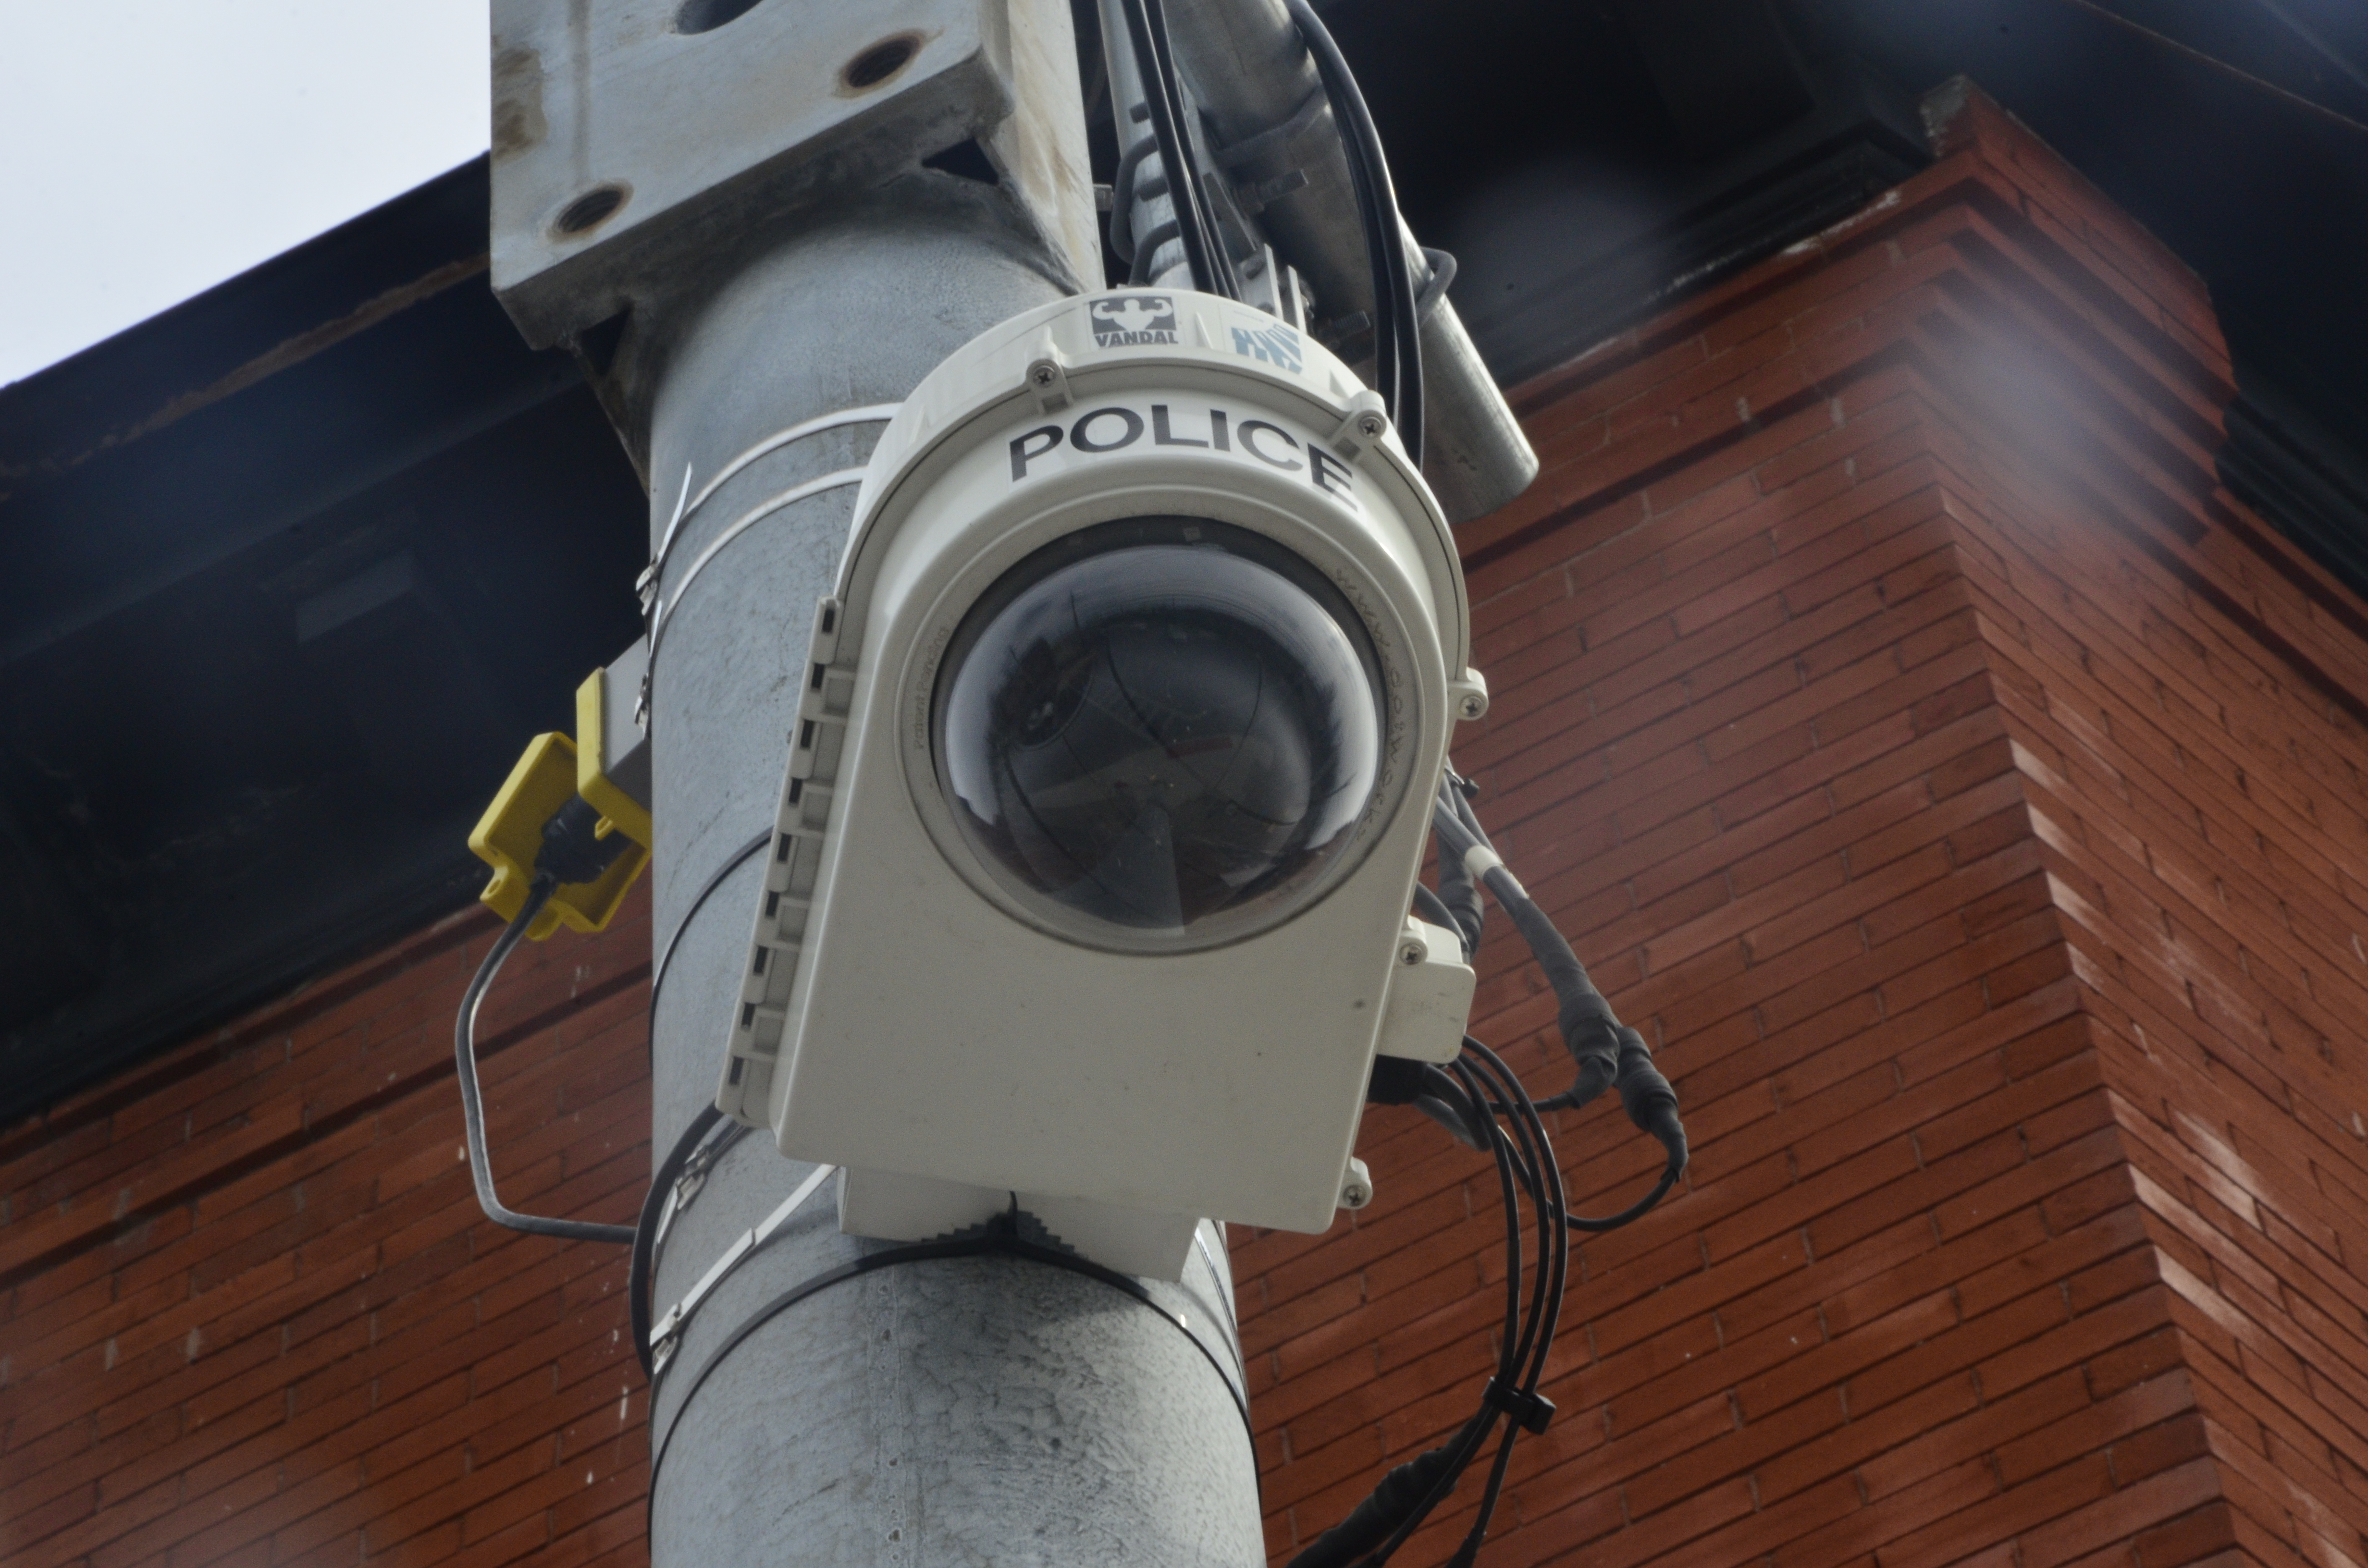 A surveillance camera at the intersection of South Geddes and Gifford streets. (Madina Toure)